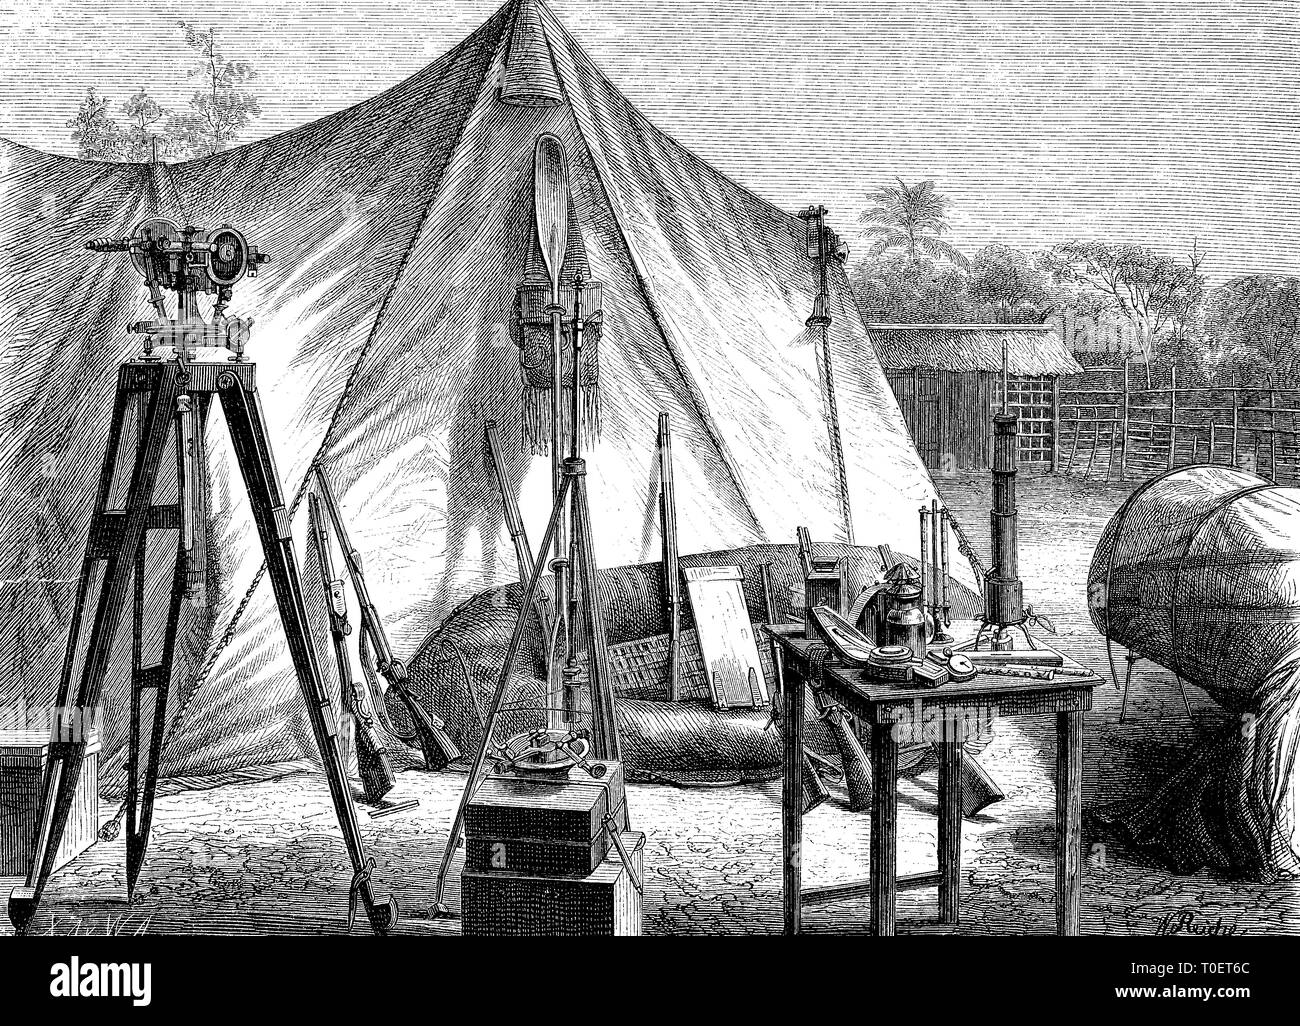 tent of african society, association for exploration of africa, at the mouth of the kongo  /  Zelt der afrikanischen Gesellschaft, Verein zur Erforschung Afrikas, an der Mündung des Kongo - Stock Image